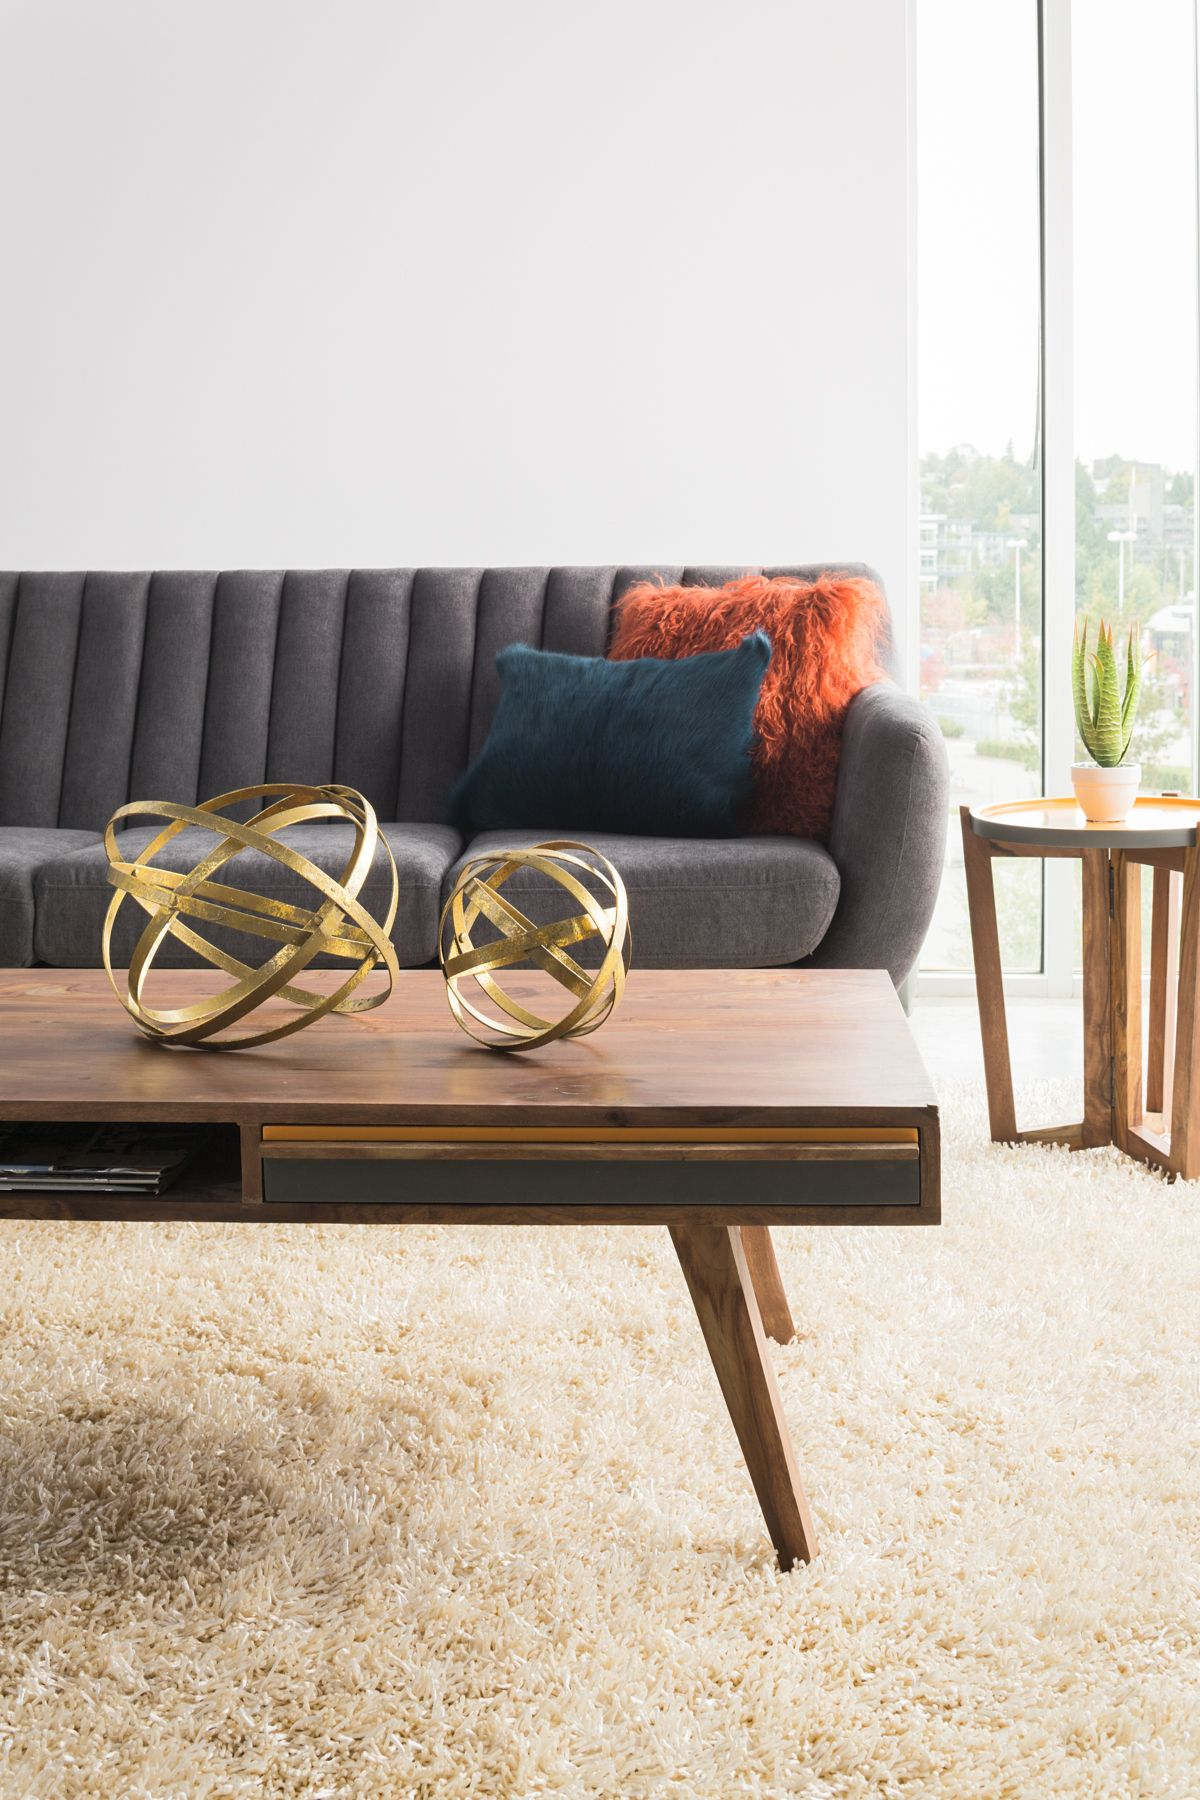 Bowie Coffee Table Mid Century Modern Living Room Mid Century Modern Living Mid Century Modern Coffee Table [ 800 x 1199 Pixel ]